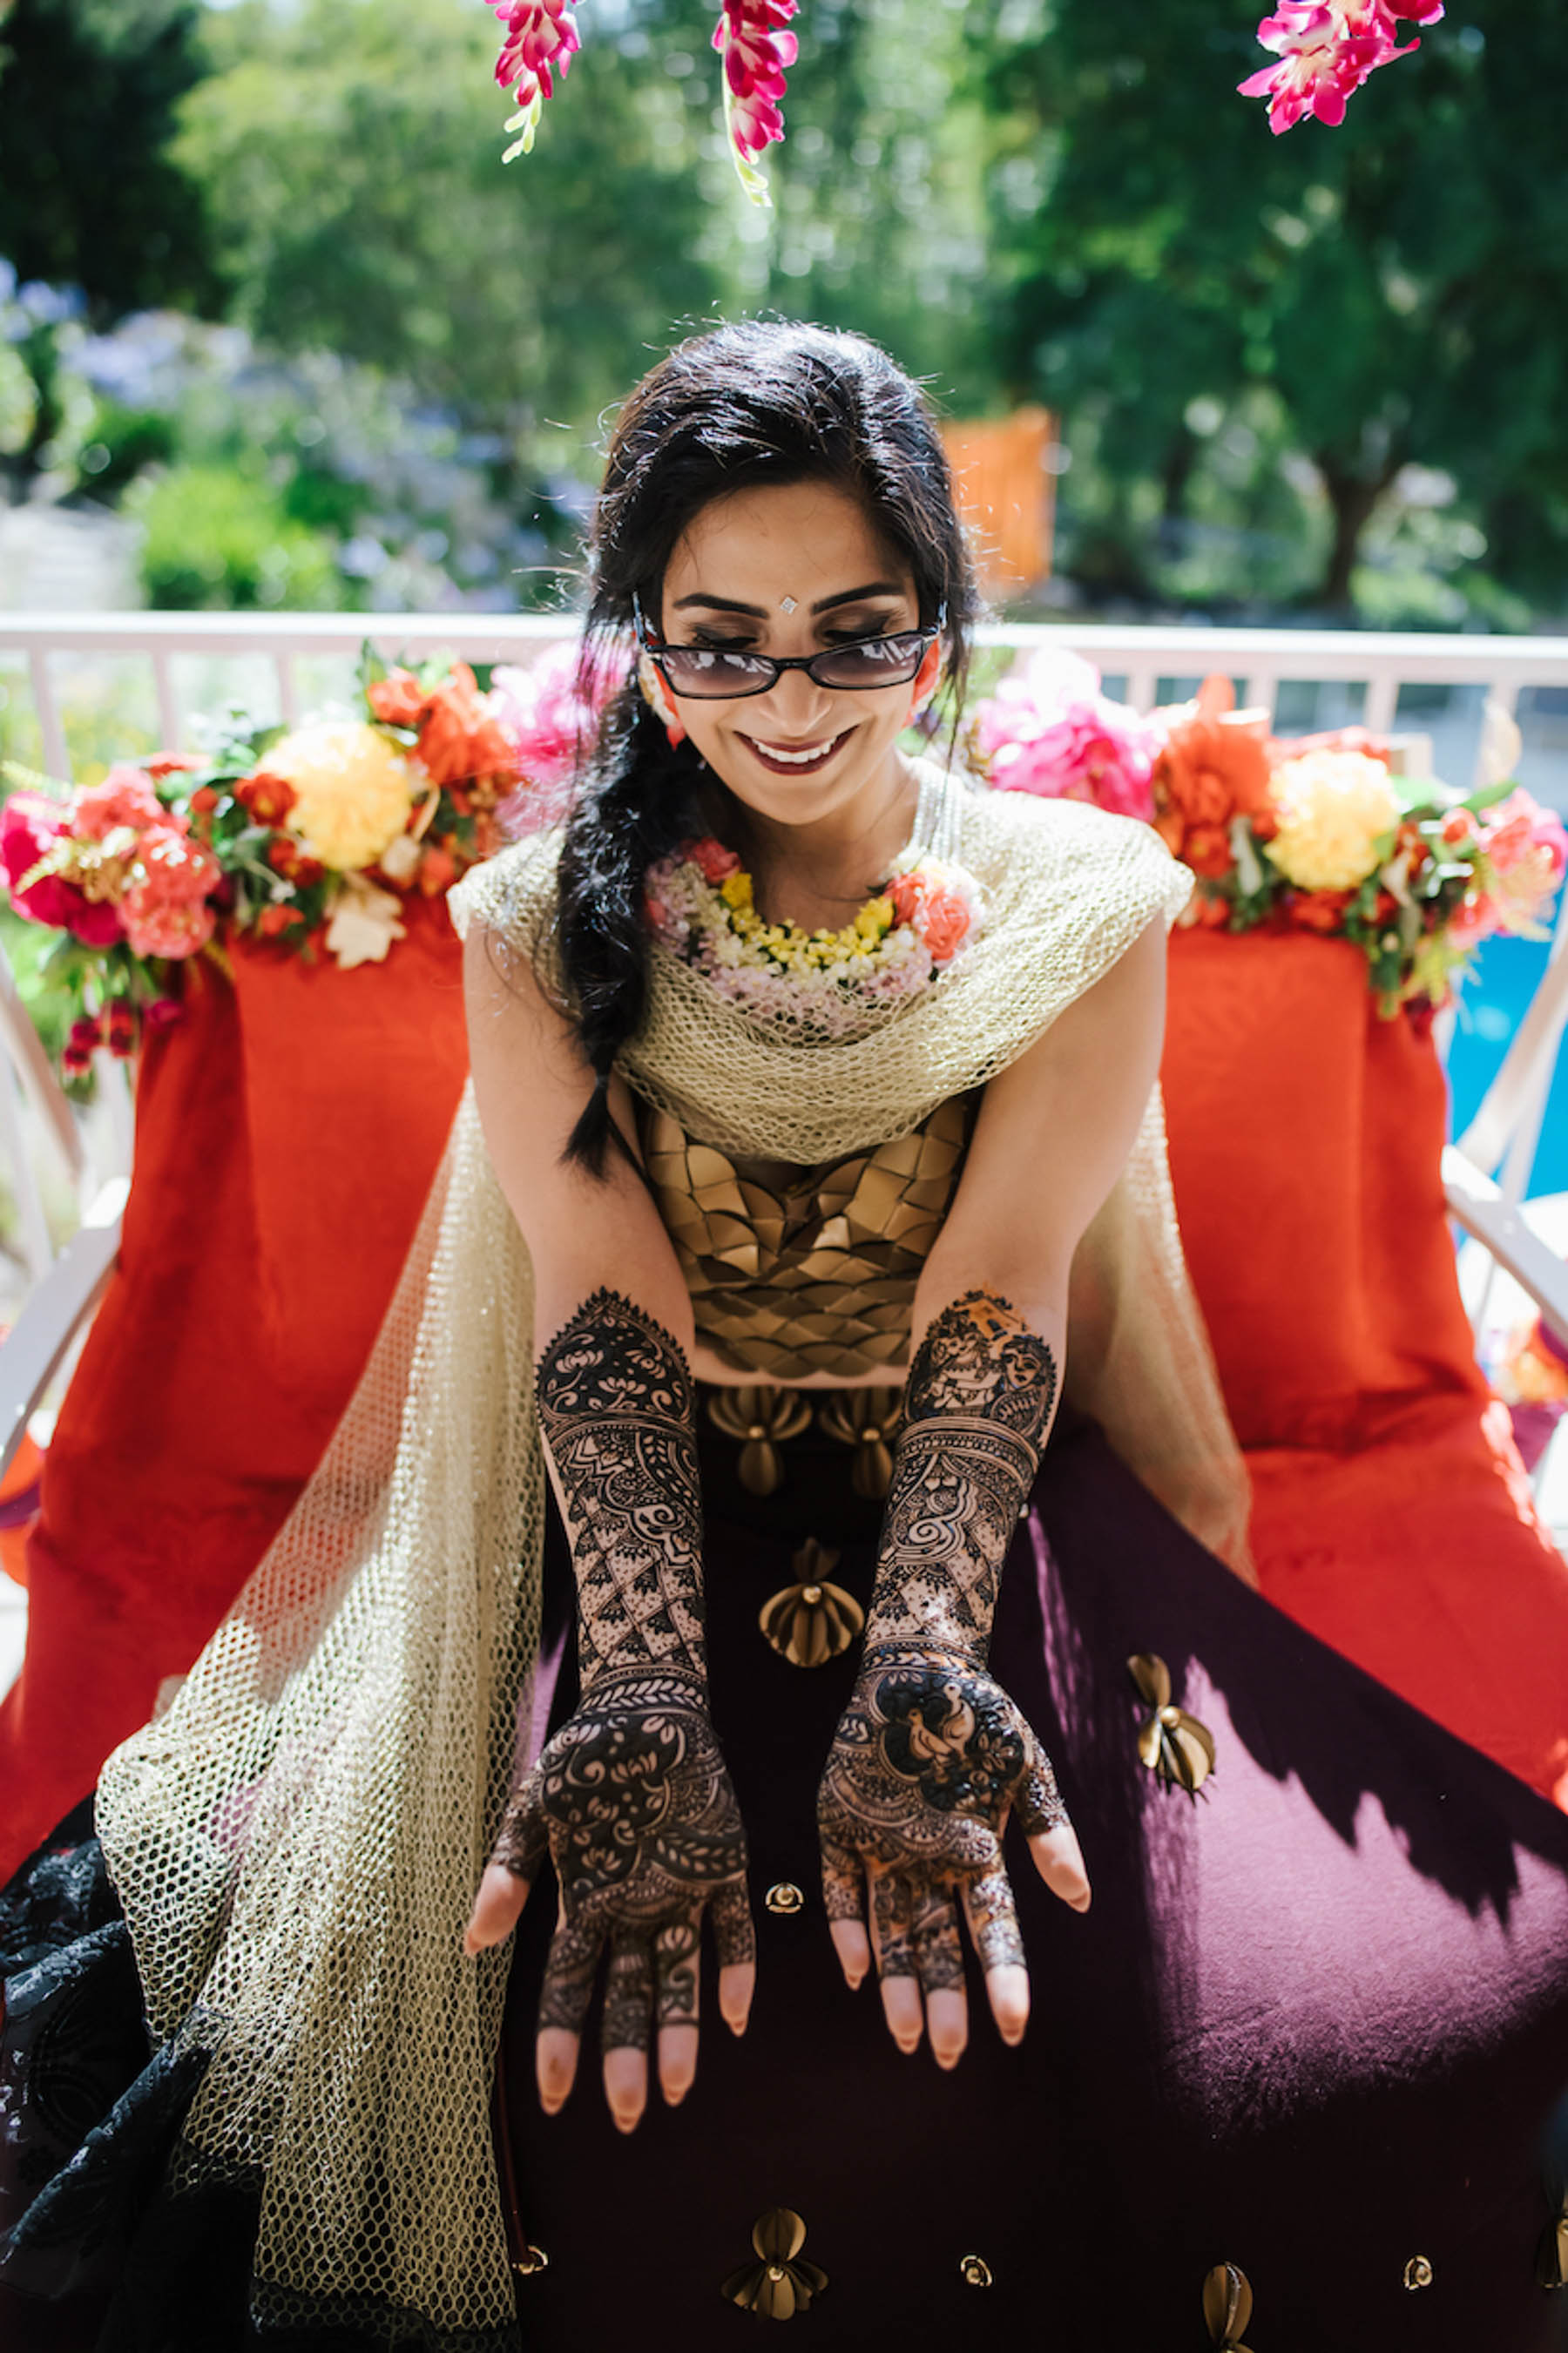 Melbourne bride, Nomeeta's Indian wedding festivities began with a colourful outdoor haldi and mehndi party, followed on by the family garba night.